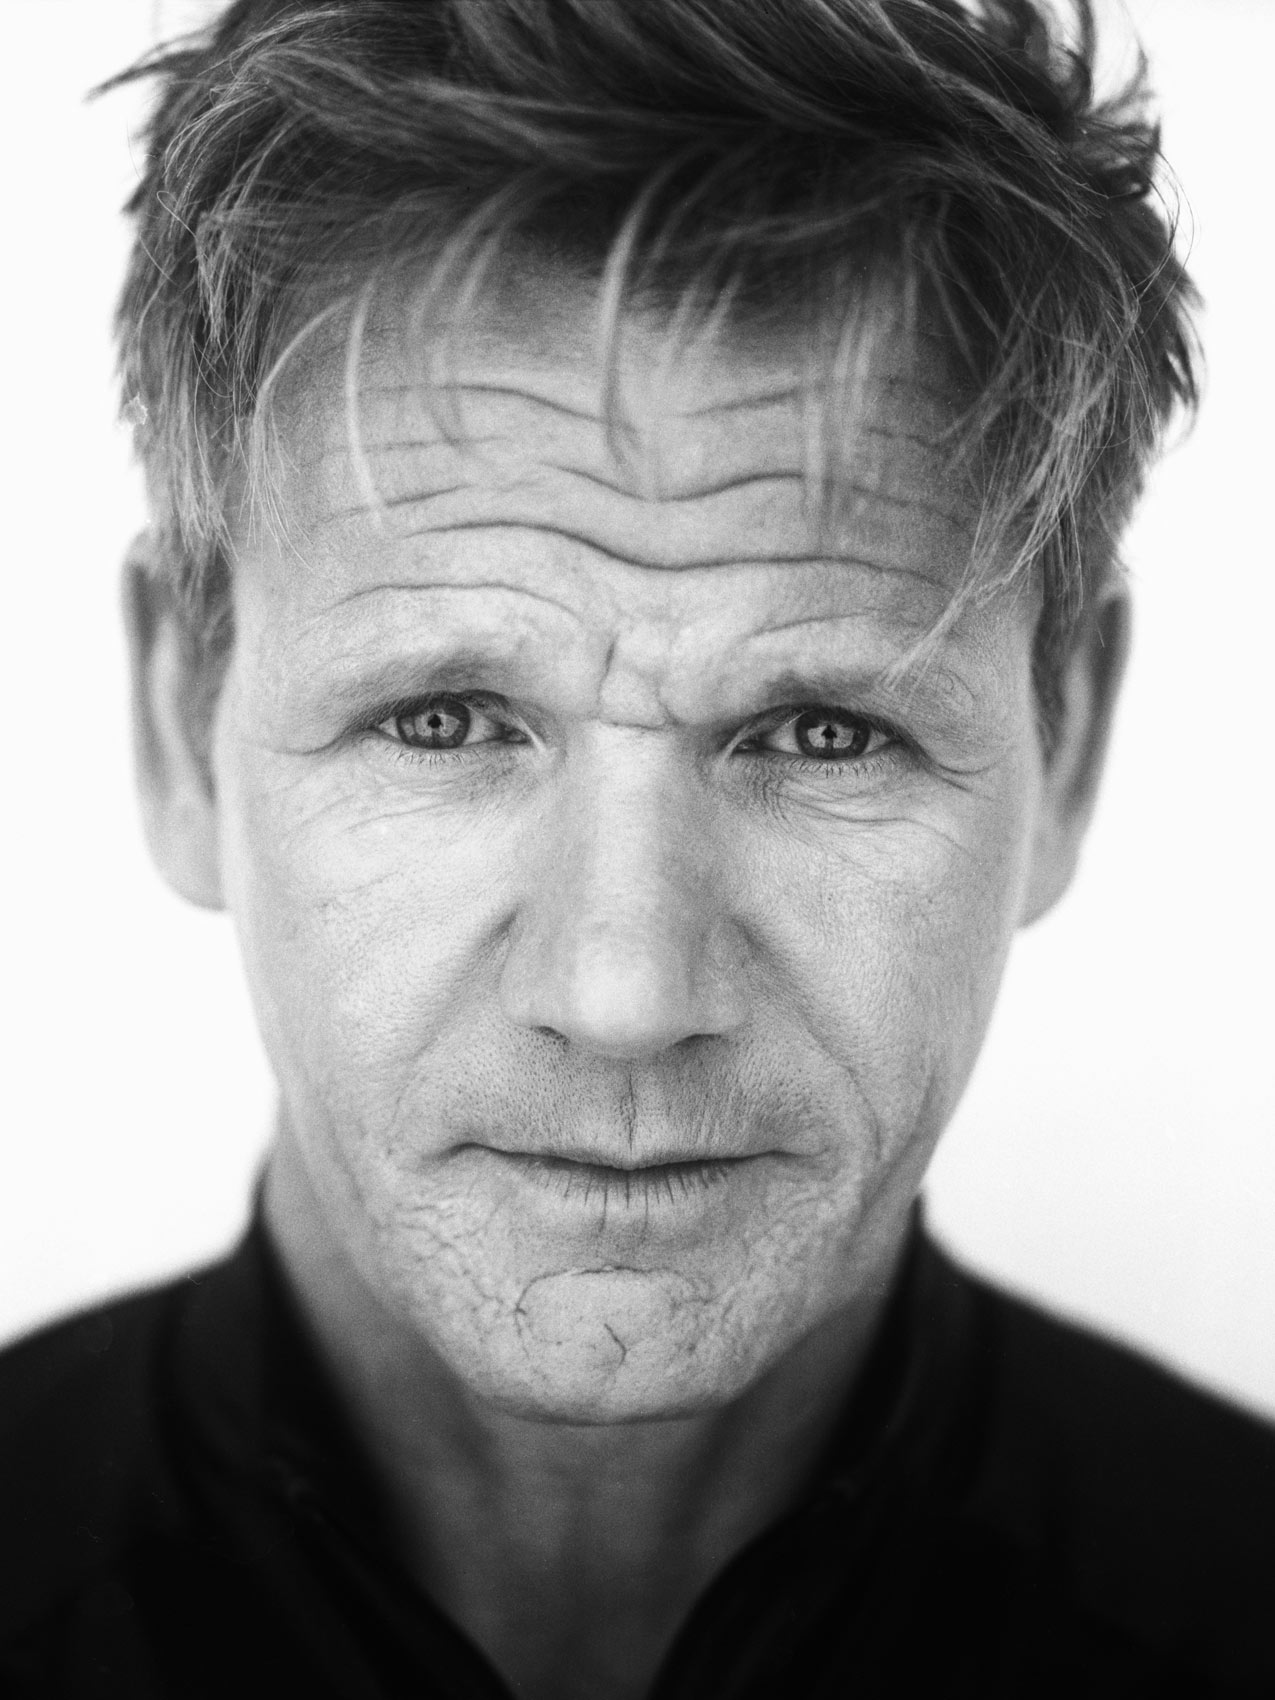 200410web-036-047-GordonRamsay_BW_Portrait-001-high